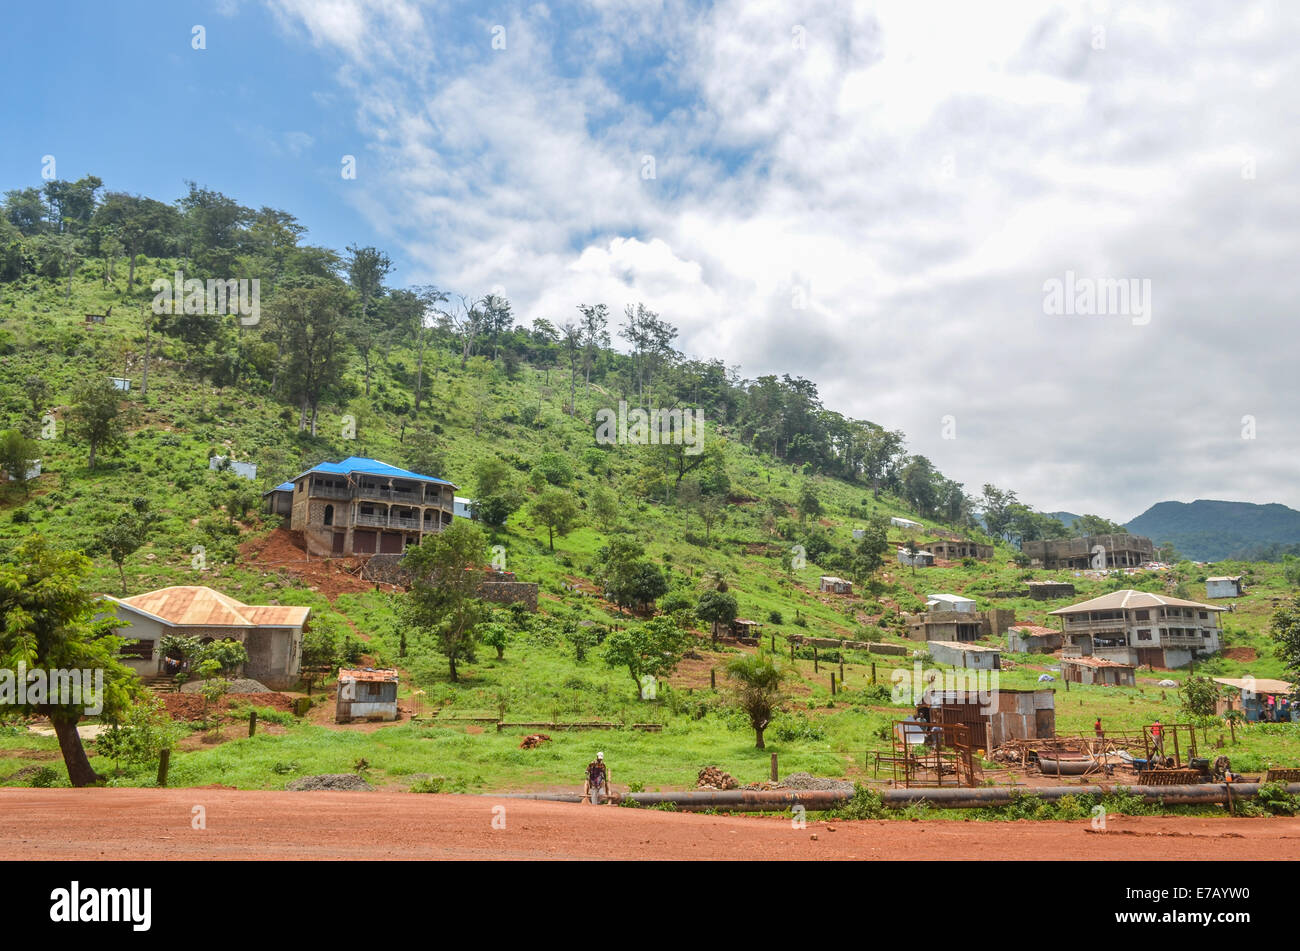 Houses in construction the Freetown peninsula, Sierra Leone - Stock Image